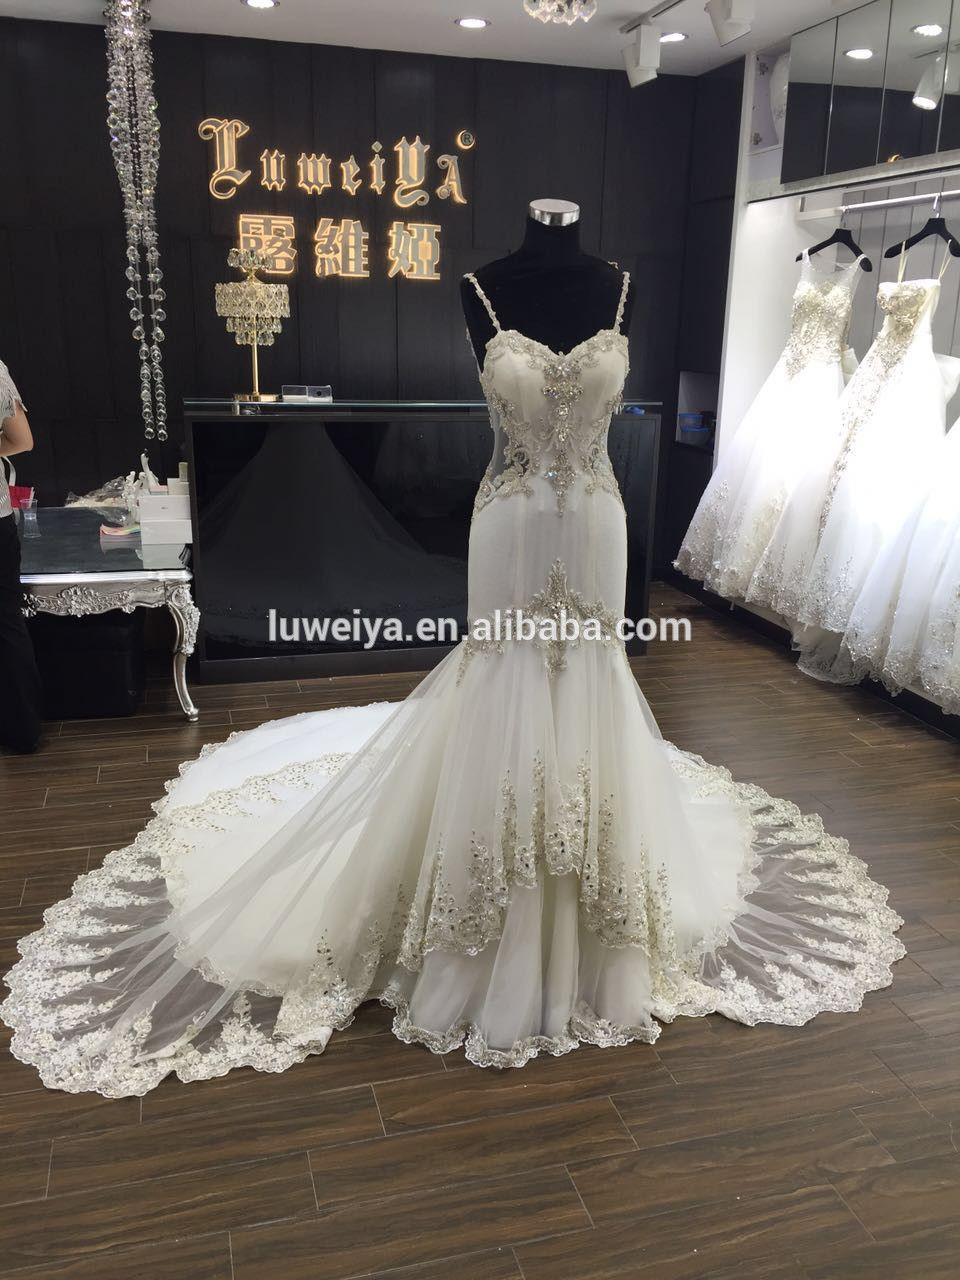 Low cut wedding dresses   New Arrive Real Picture Low Cut Open Back Sweetheart Neck